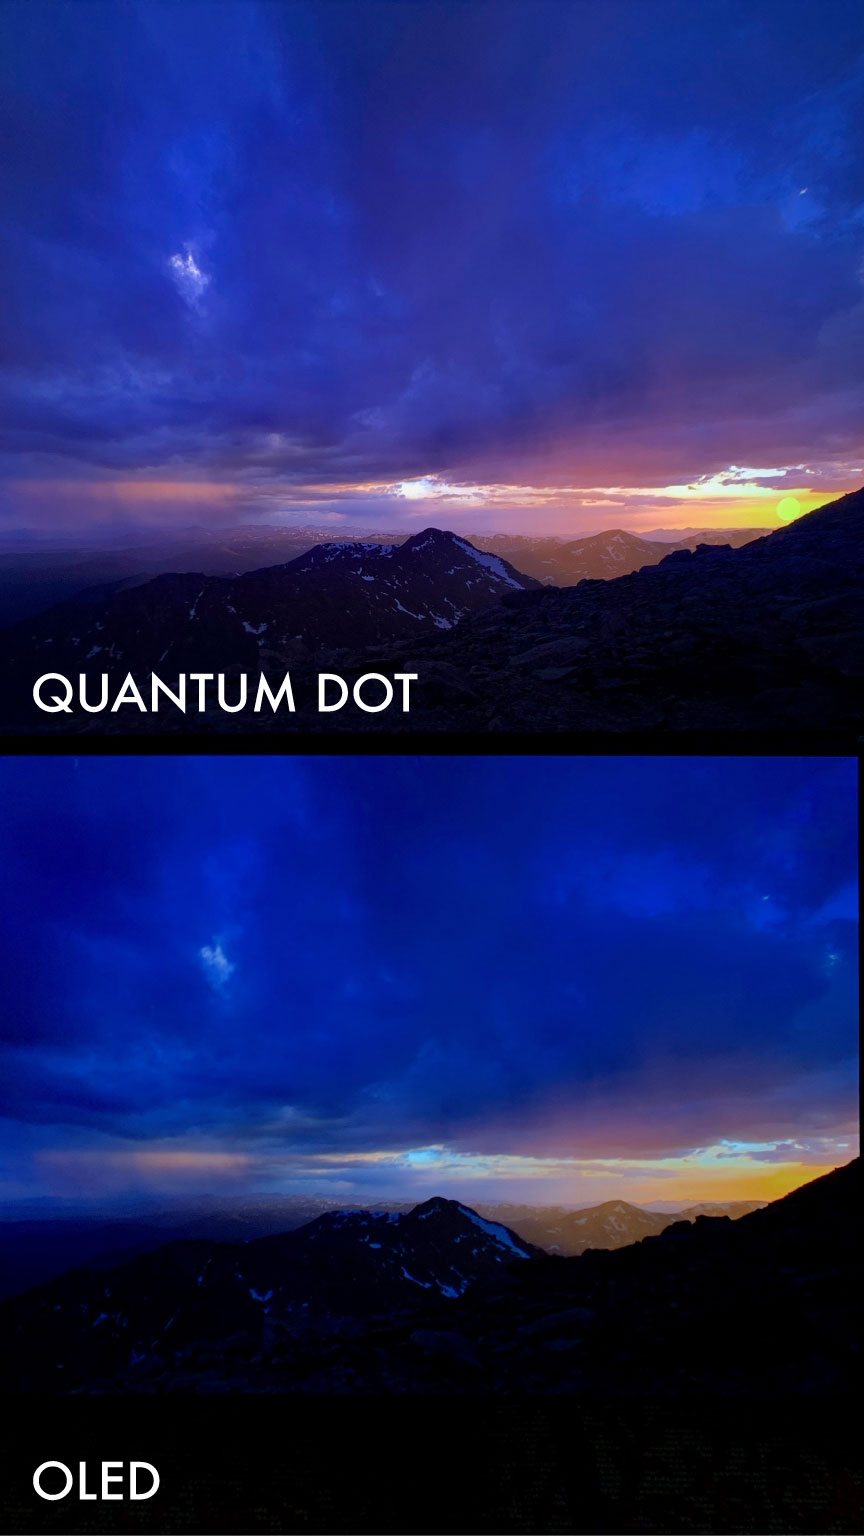 Color luminance shootout showing Quantum Dot vs OLED. Notice the brighter Quantum Dot set is able to show the sun while the sun disappears on the OLED due to tone-mapping. Looking at the HDR data we can see that the sun falls way outside the OLED's capability with code values as high as 10,000 nits.